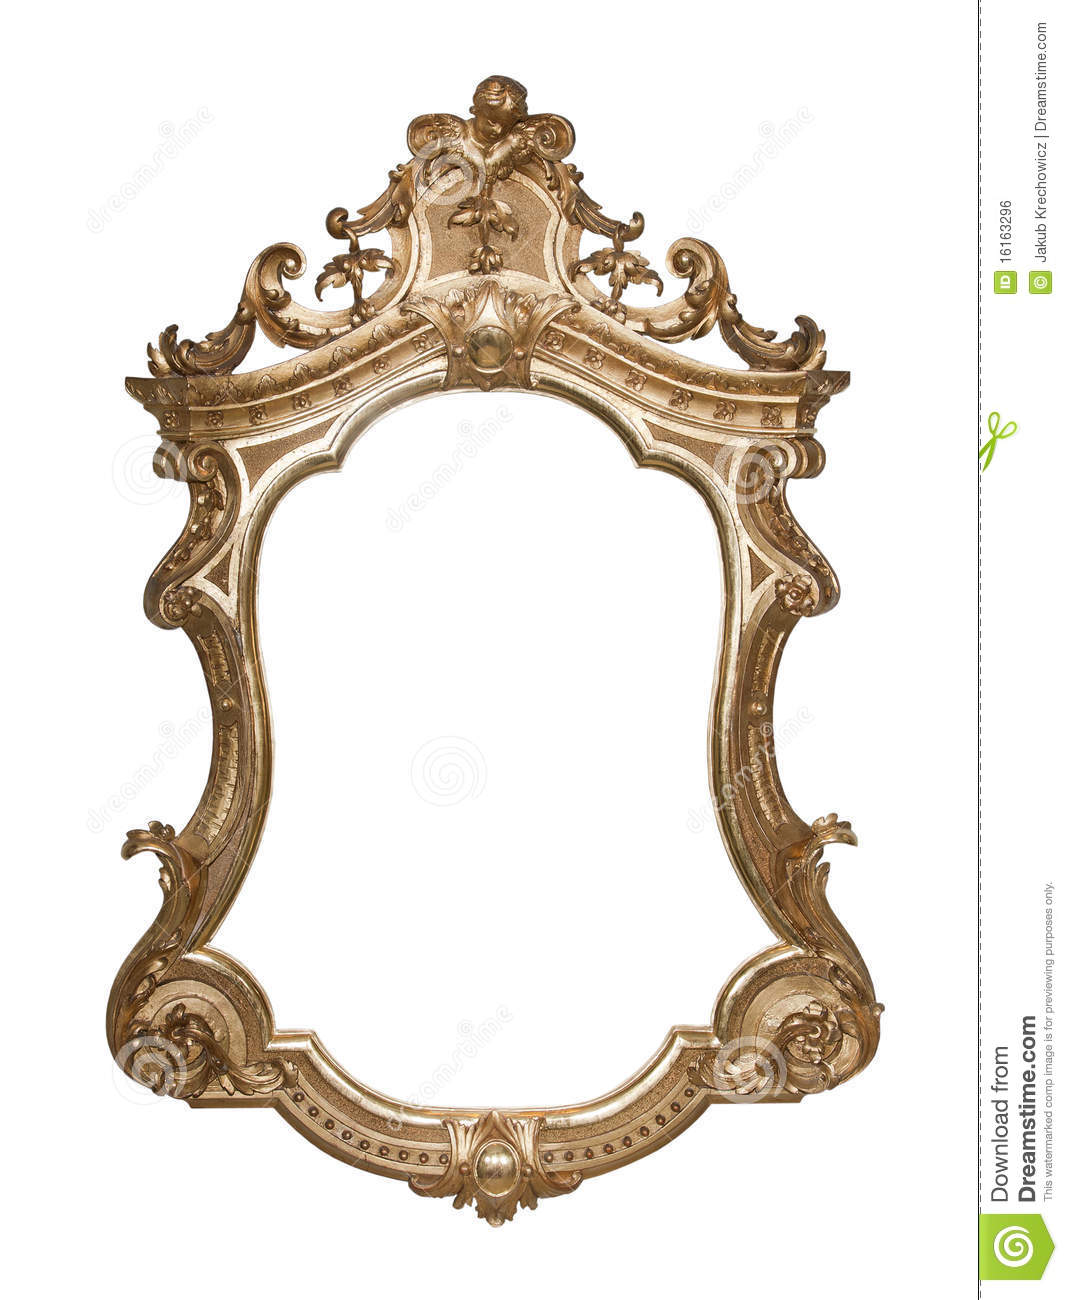 Ornate Vintage Frame Royalty Free Stock Image  Image: 16163296